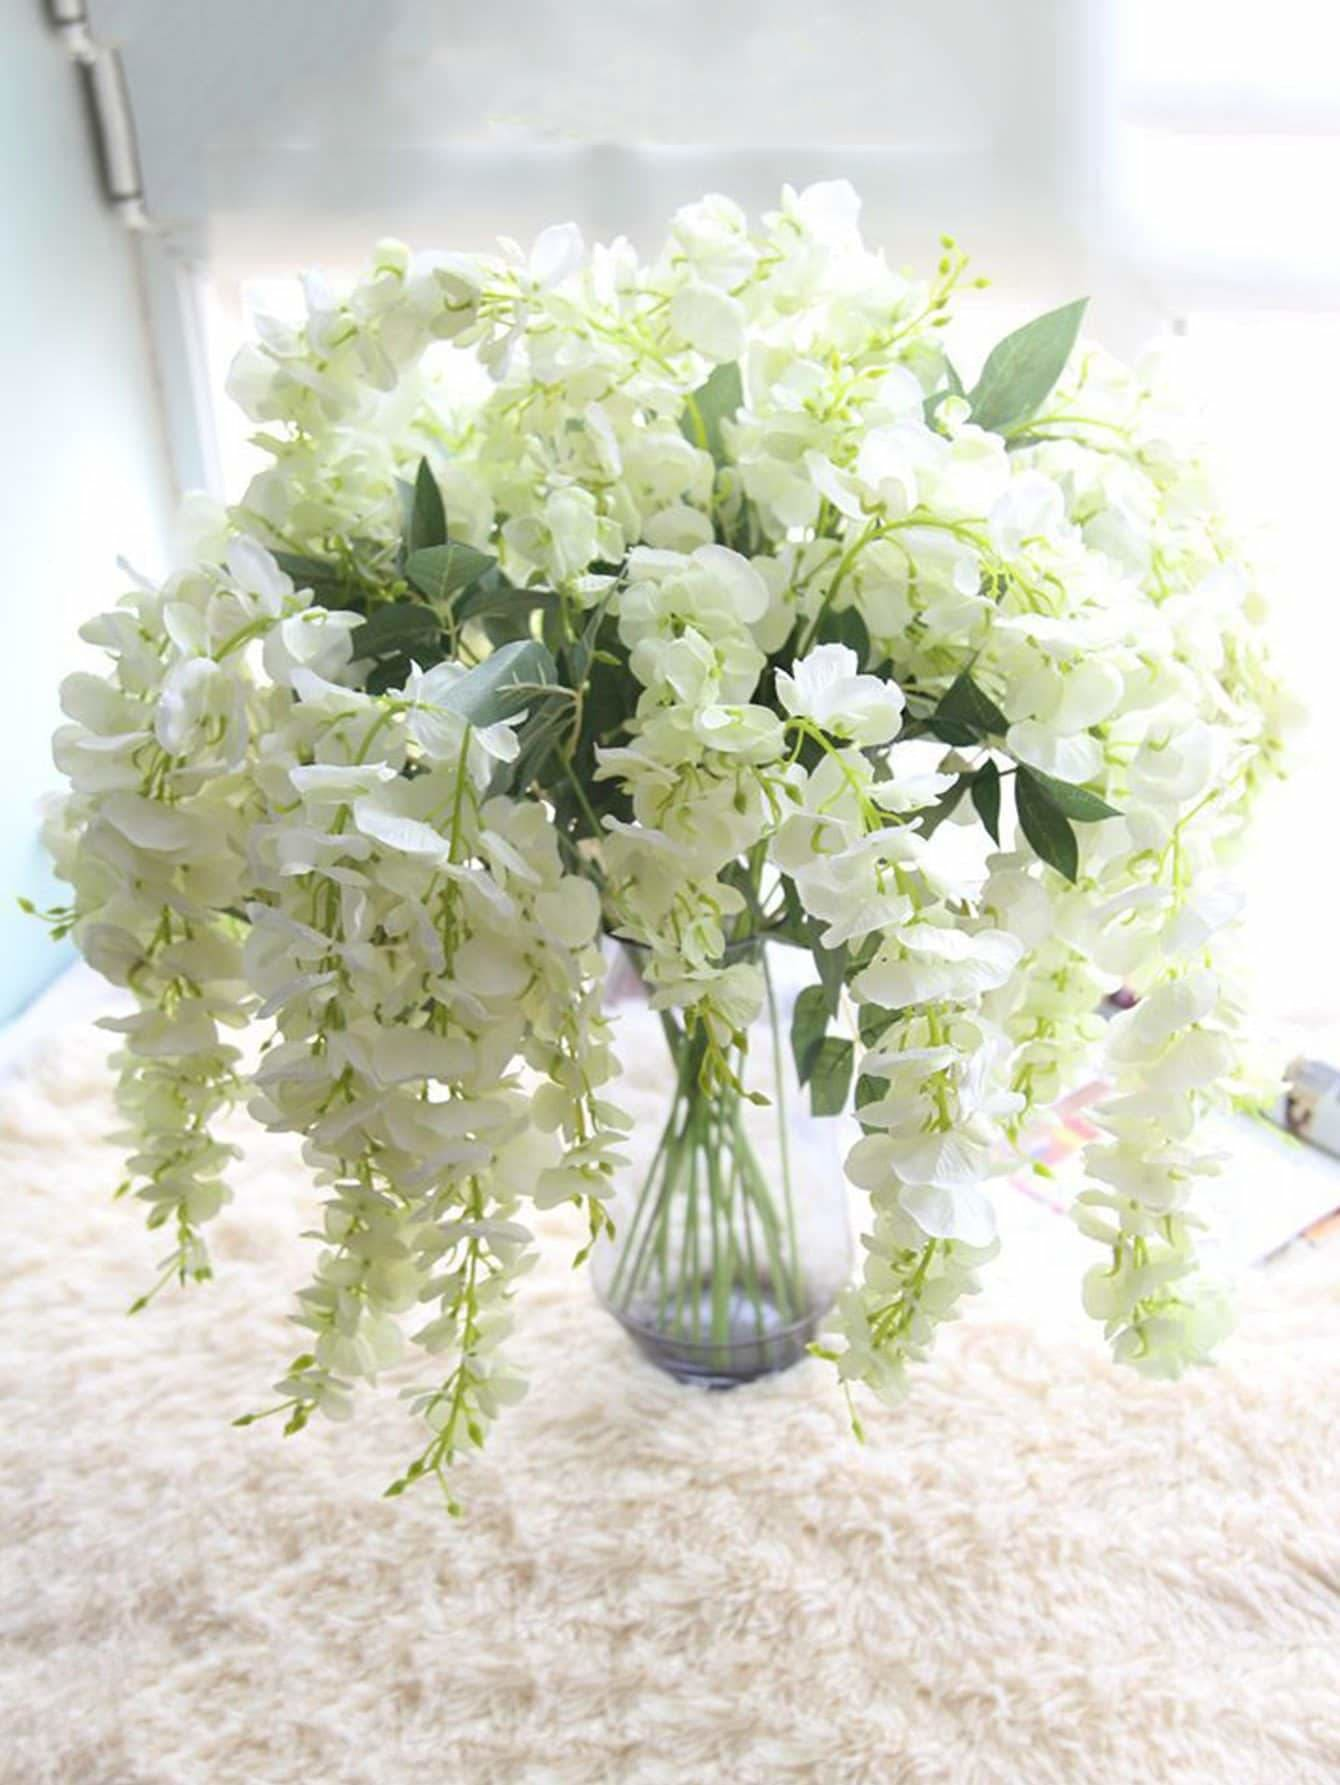 Artificial Wisteria Flowers Vine 1pc - Vases & Artificial Flowers